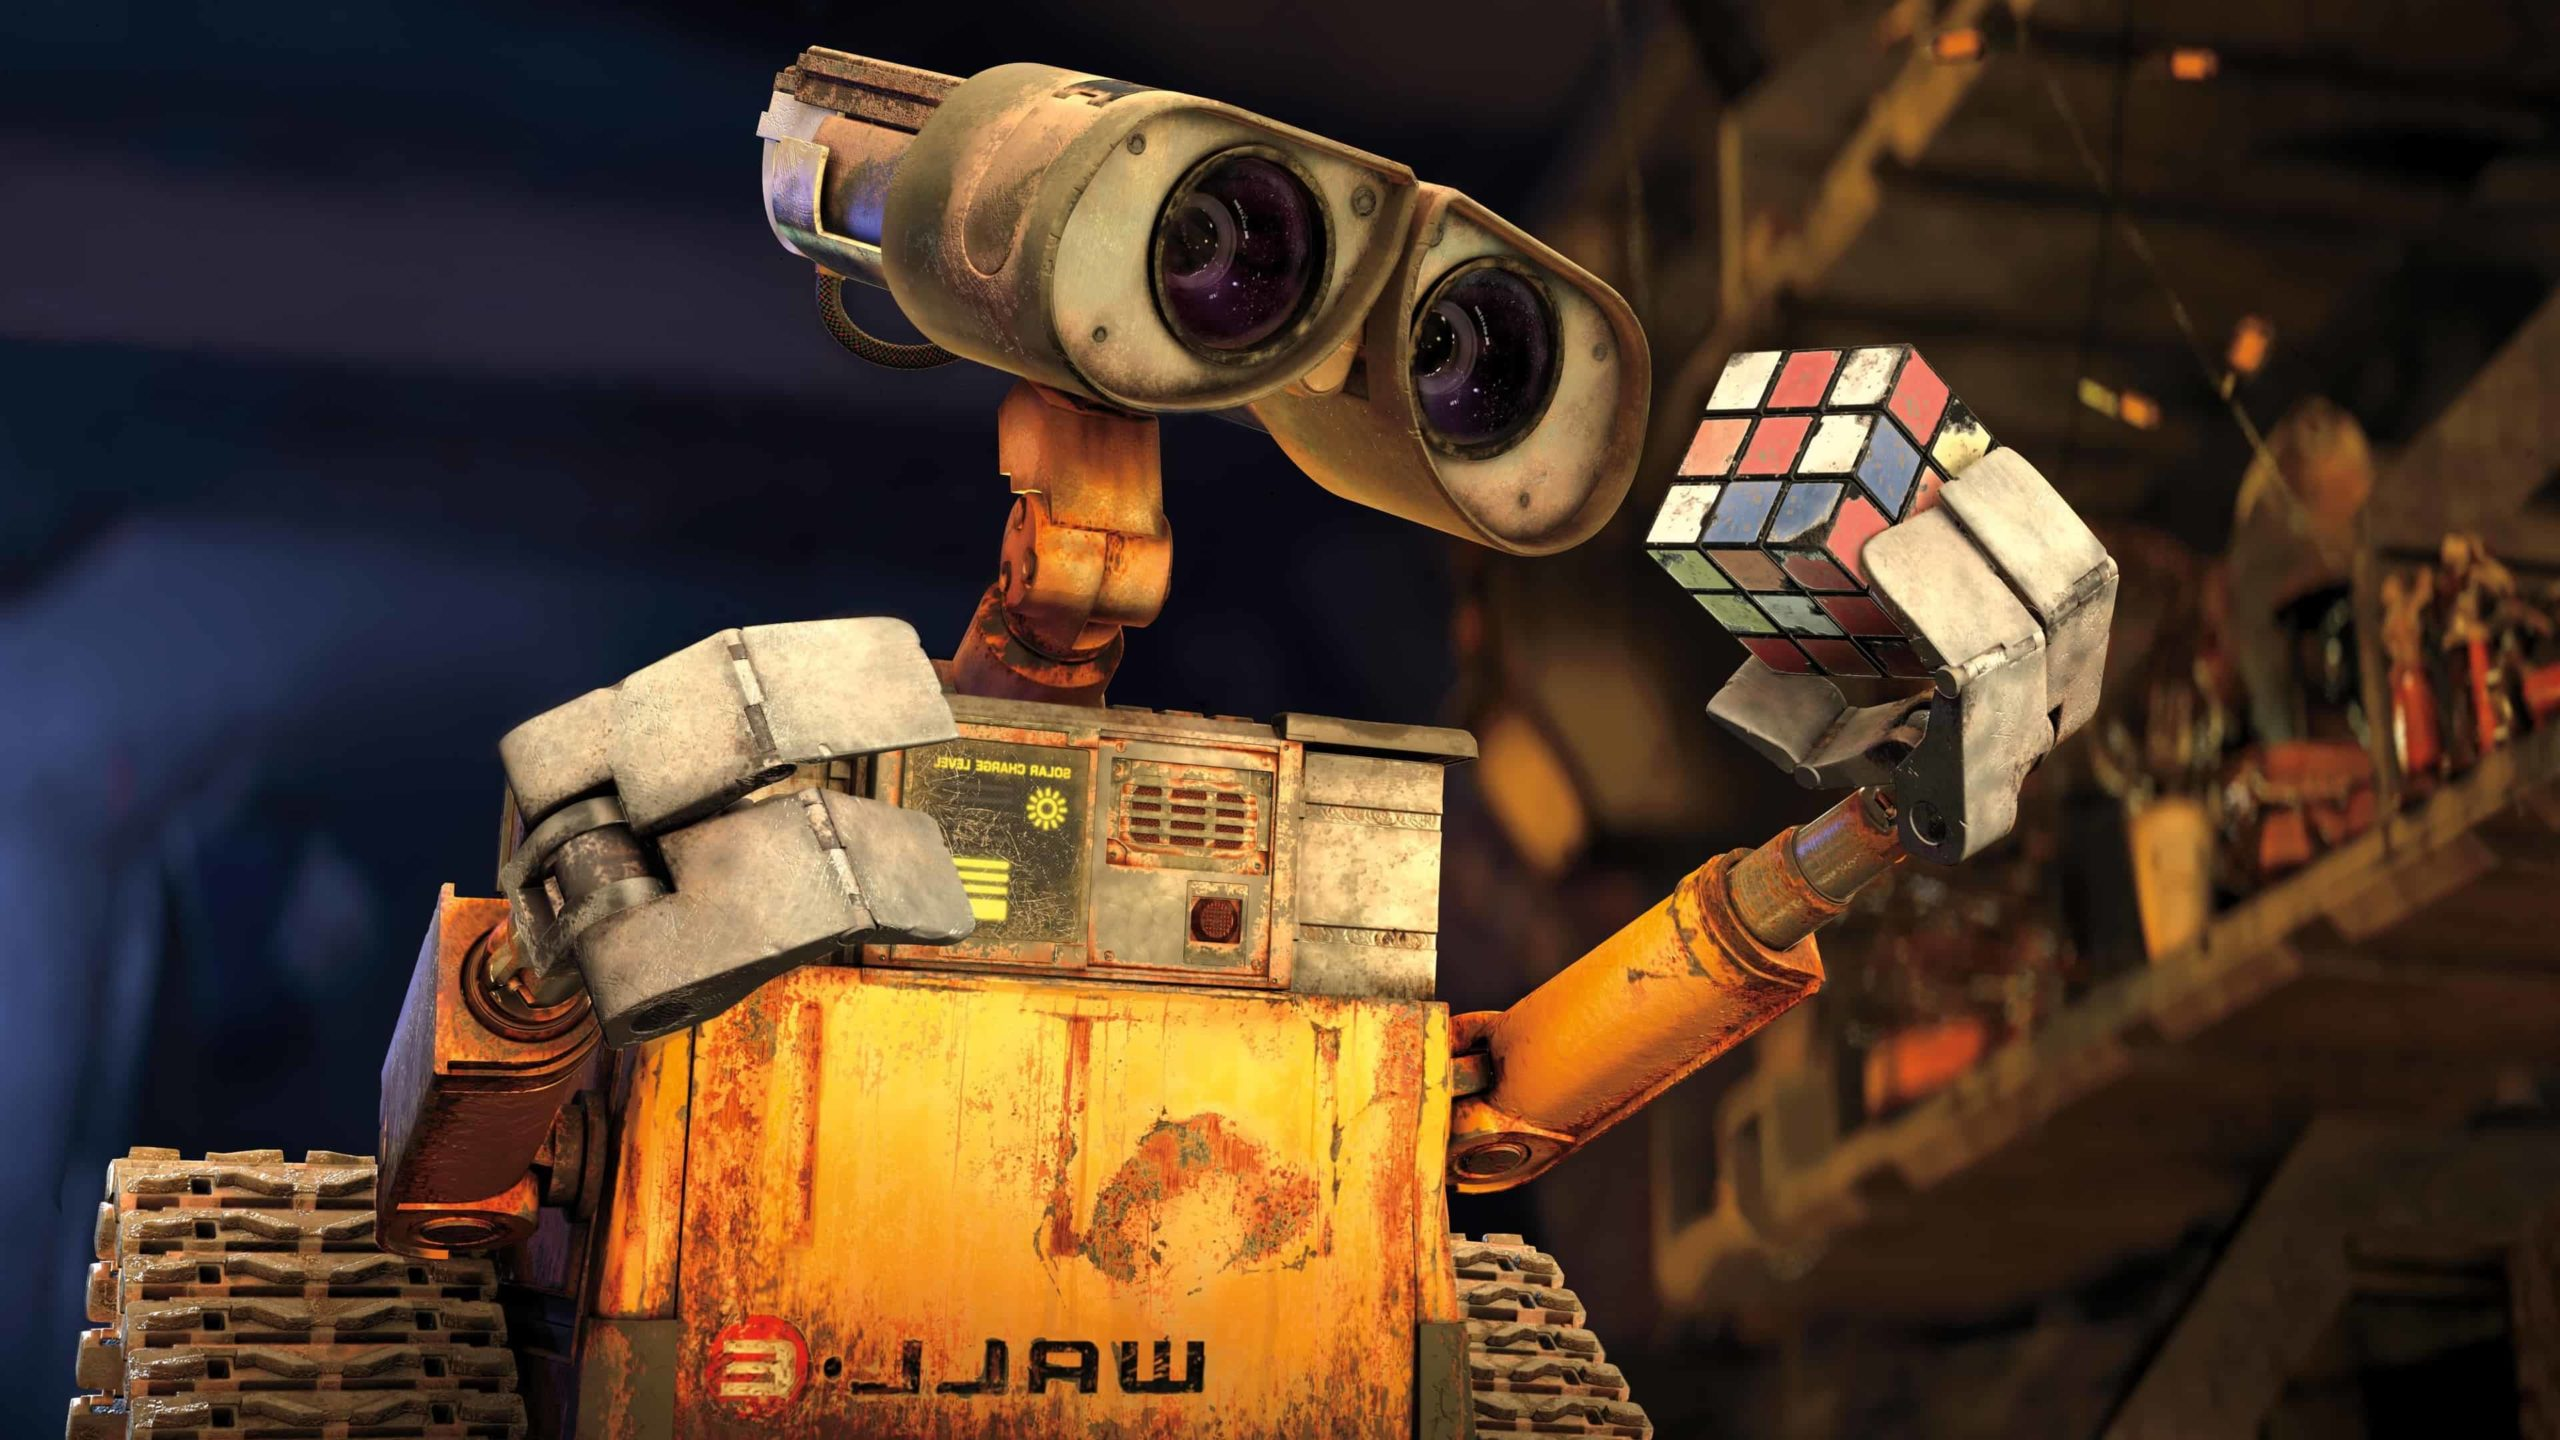 walle pic hd